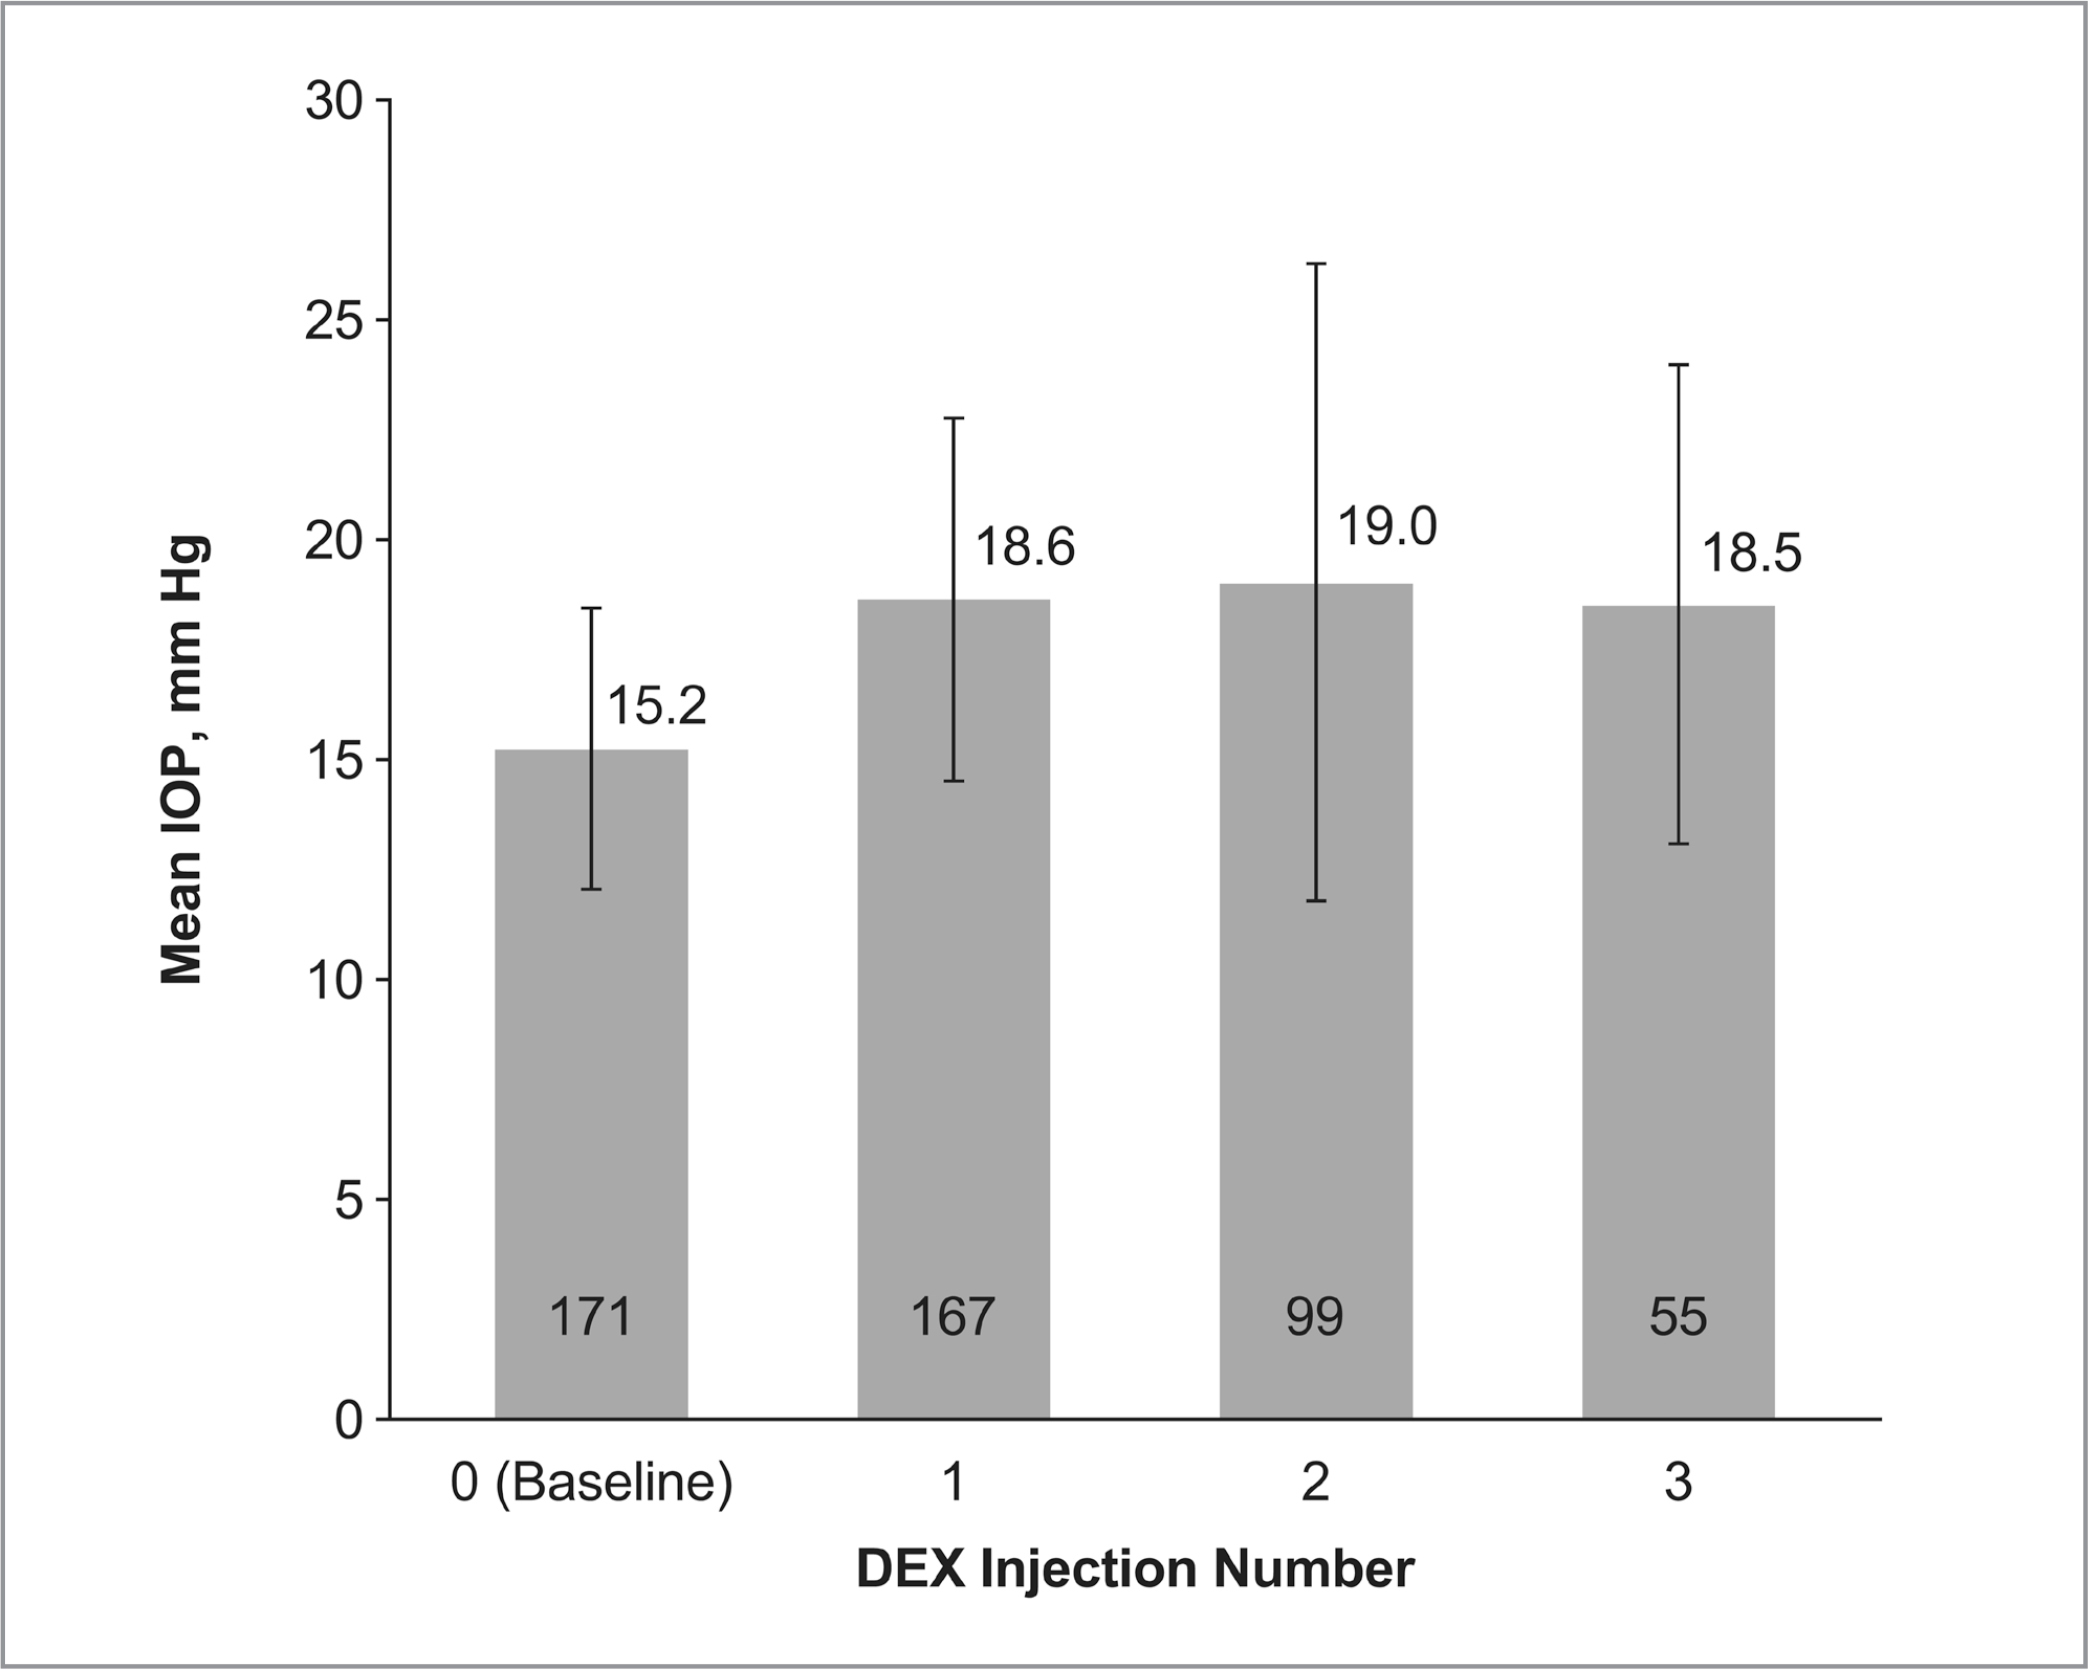 Mean intraocular pressure (IOP) after each dexamethasone intravitreal implant (DEX) injection. Numbers within bars indicate the number of patients with available data. Error bars indicate the standard deviation.